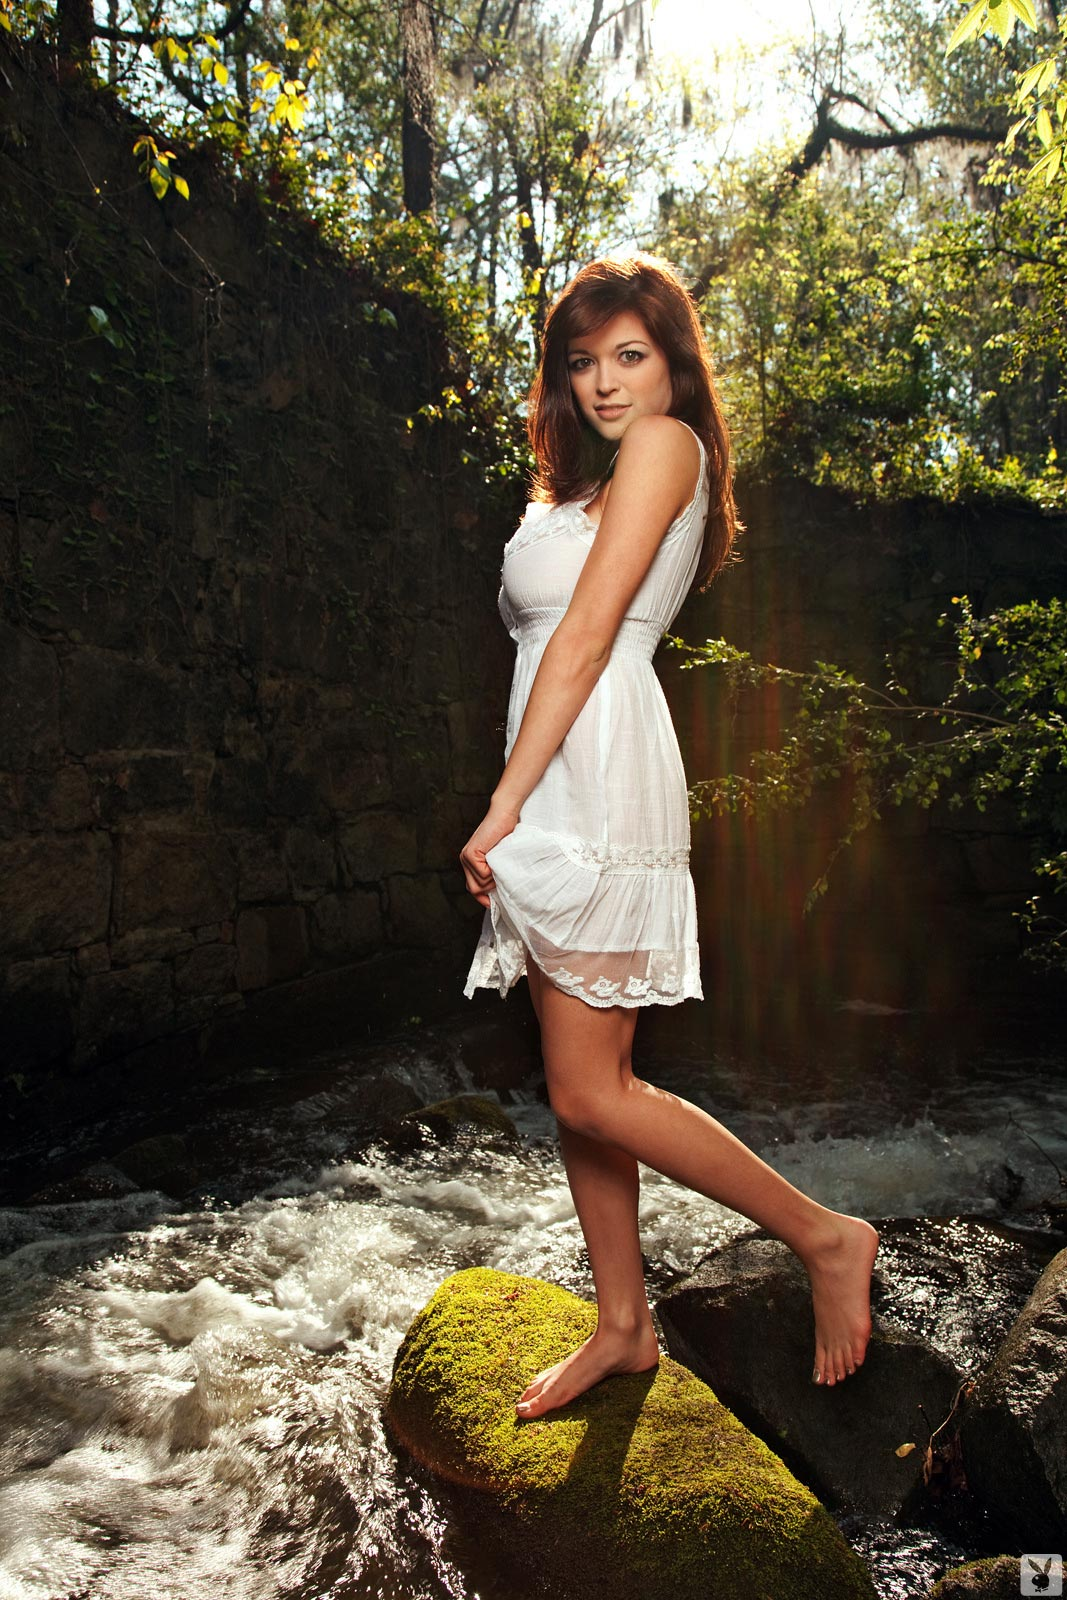 Tessa Fowler posing naked in the river side - The Boobs Blog